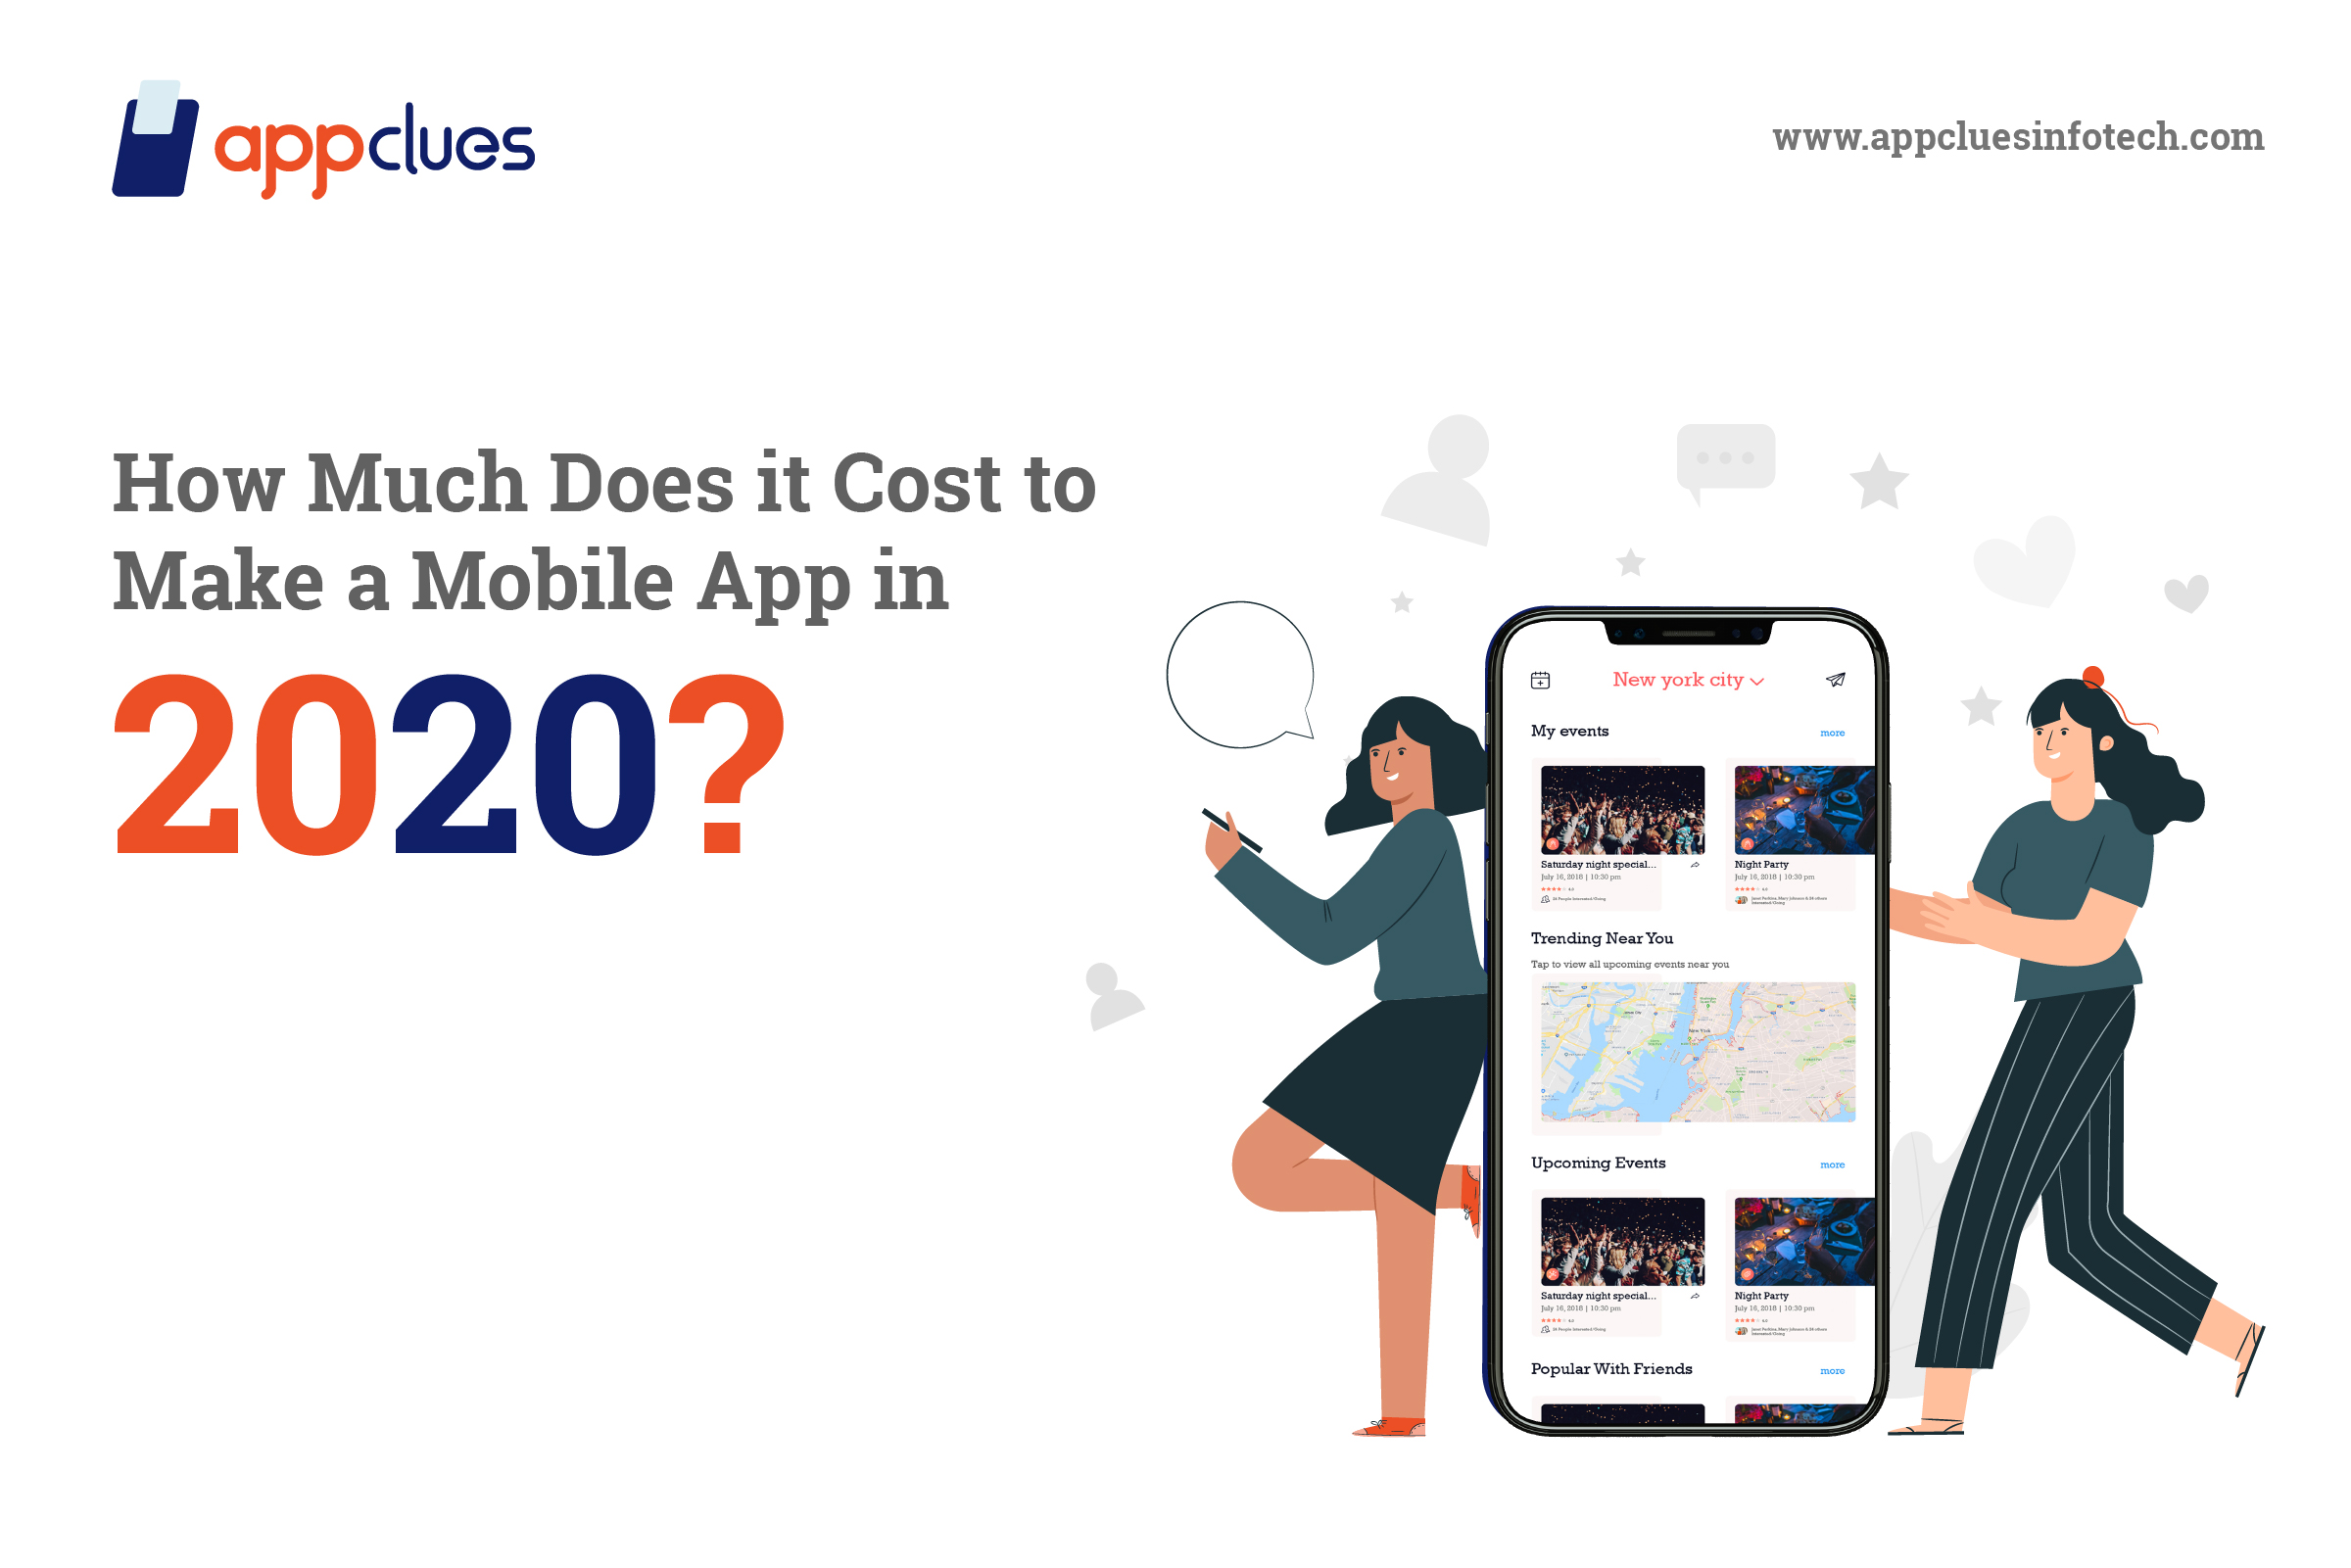 How Much Does it Cost to Make a Mobile App in 2020-